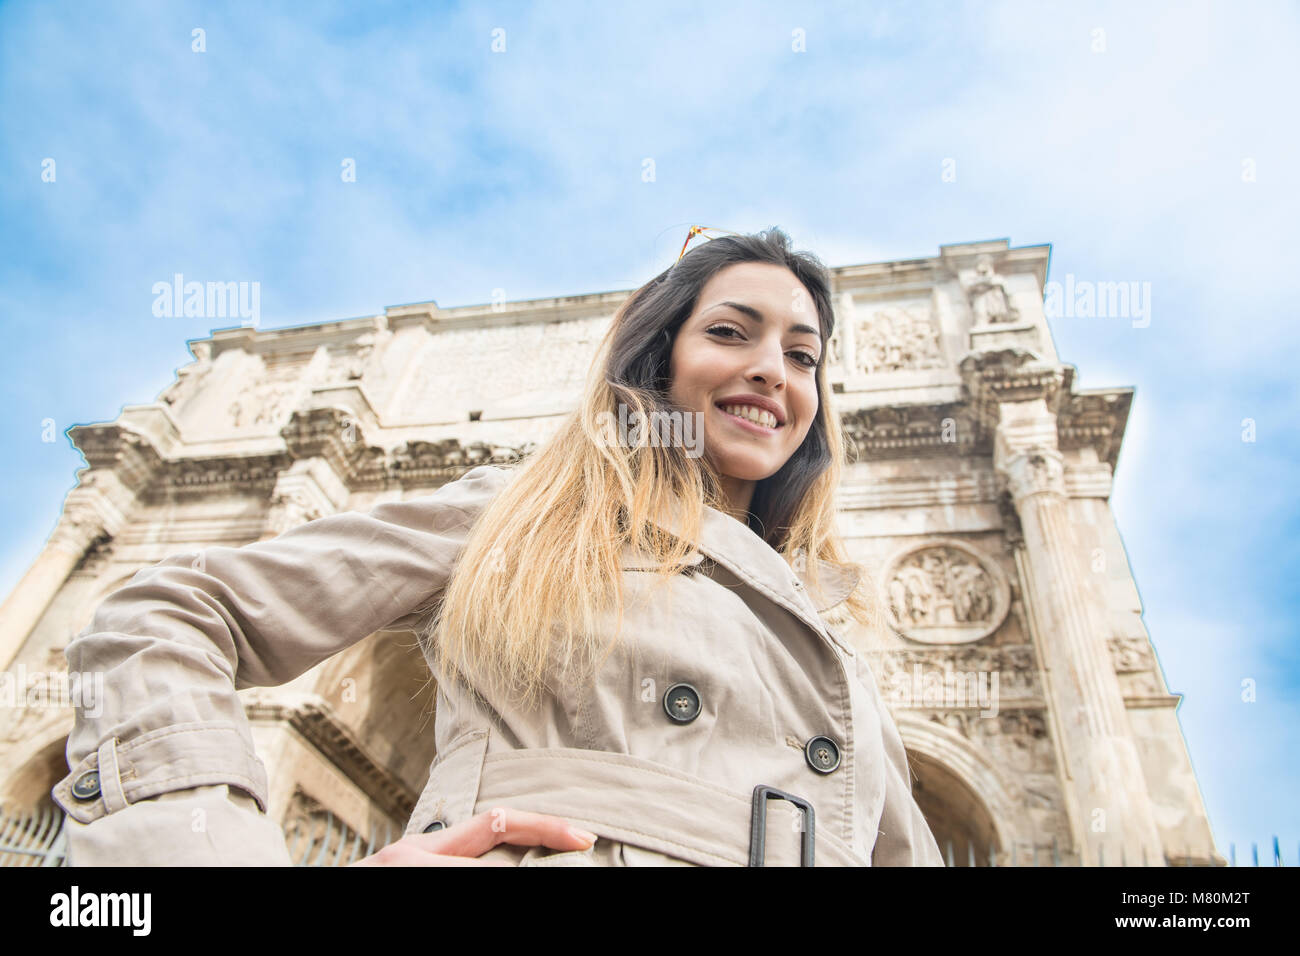 Low angle view of young pretty tourist woman smiling looking at camera, in background arch of Constantine monument - Stock Image